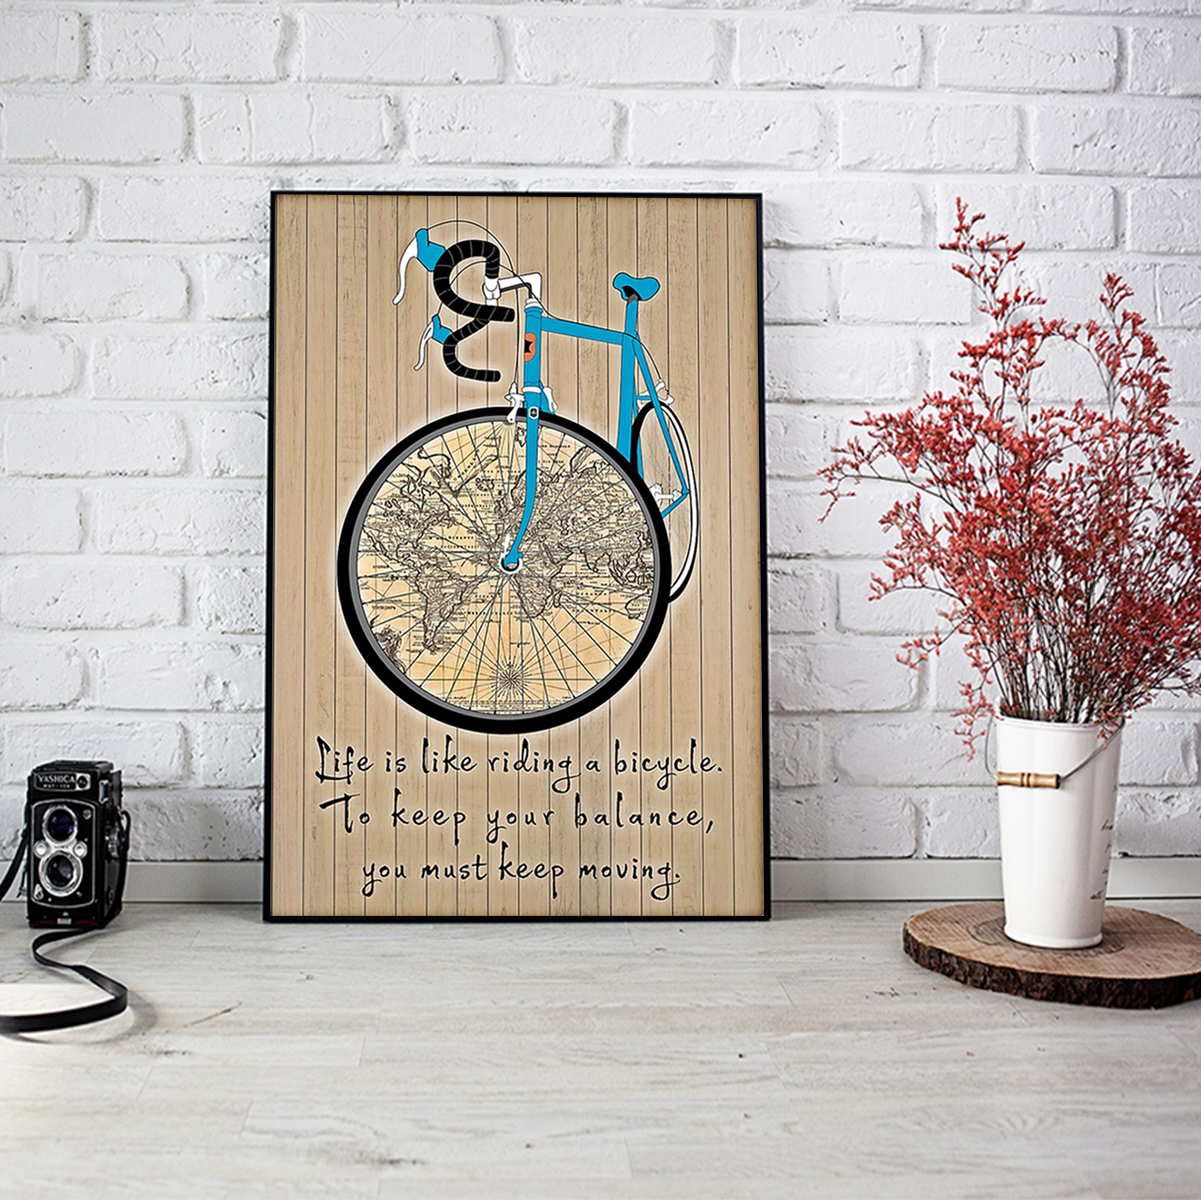 Life is like is riding a bicycle map poster A1